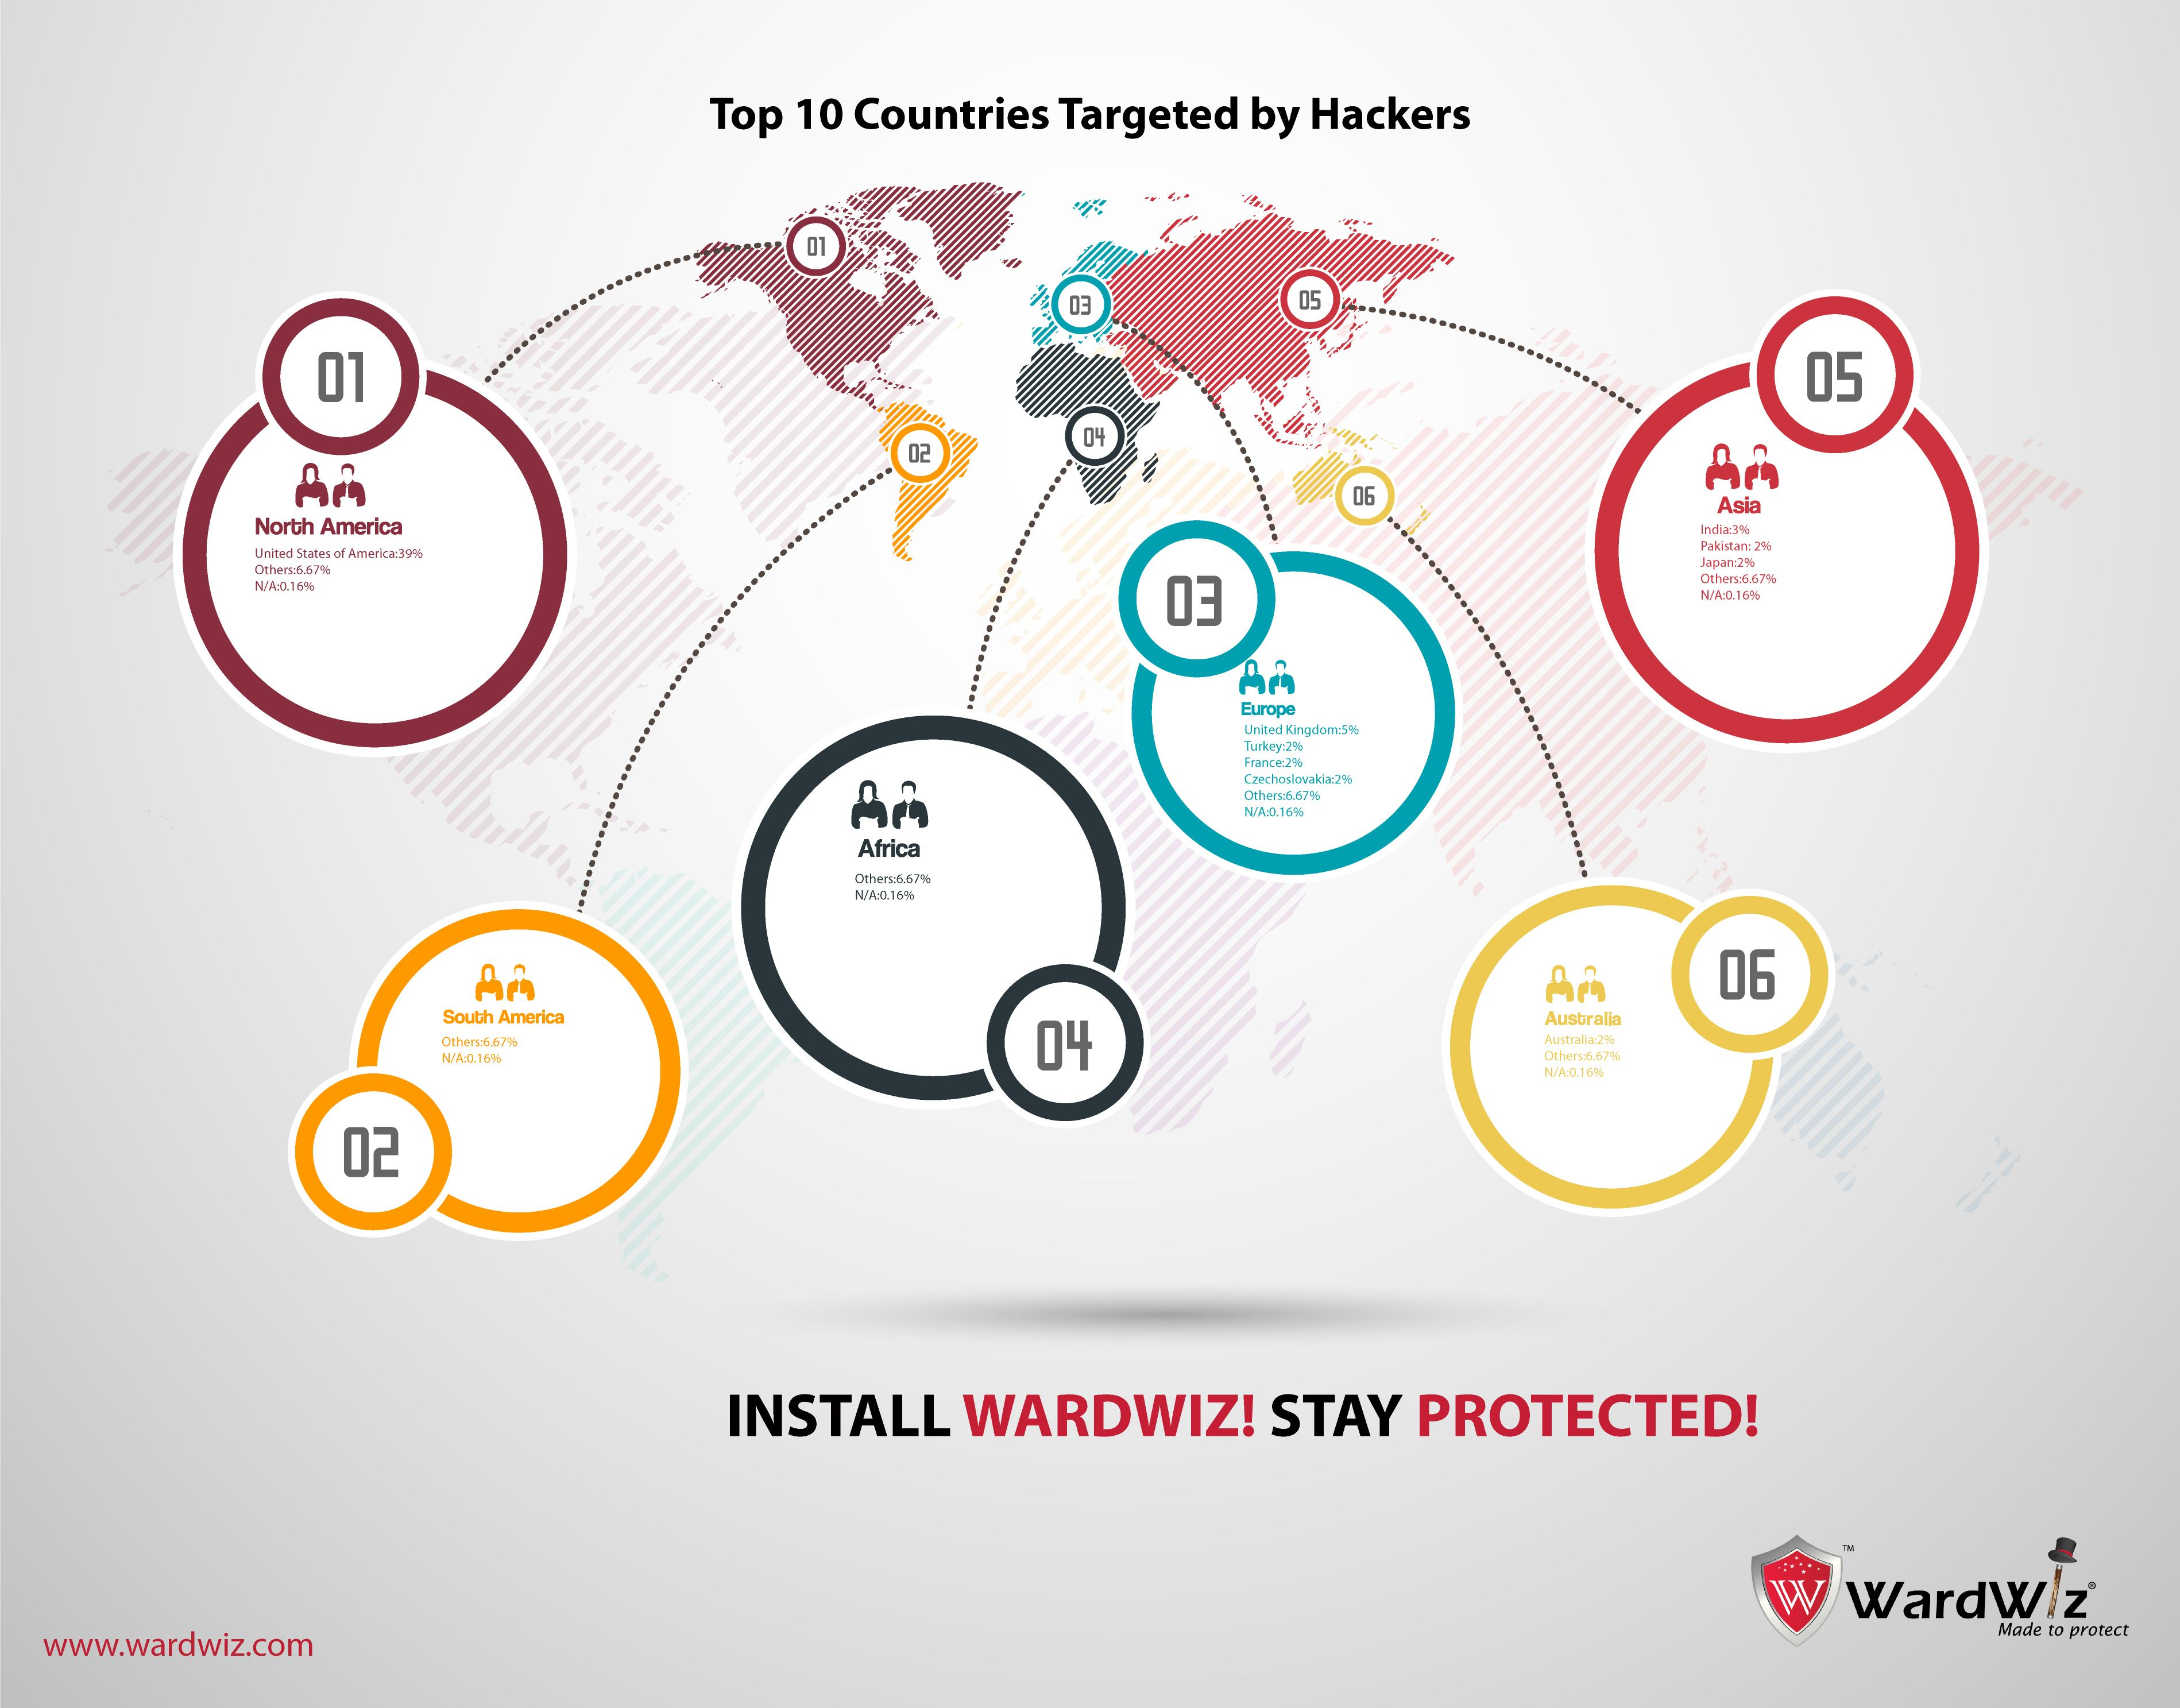 Top 10 Countries Targeted by Hackers in 2013. Stay